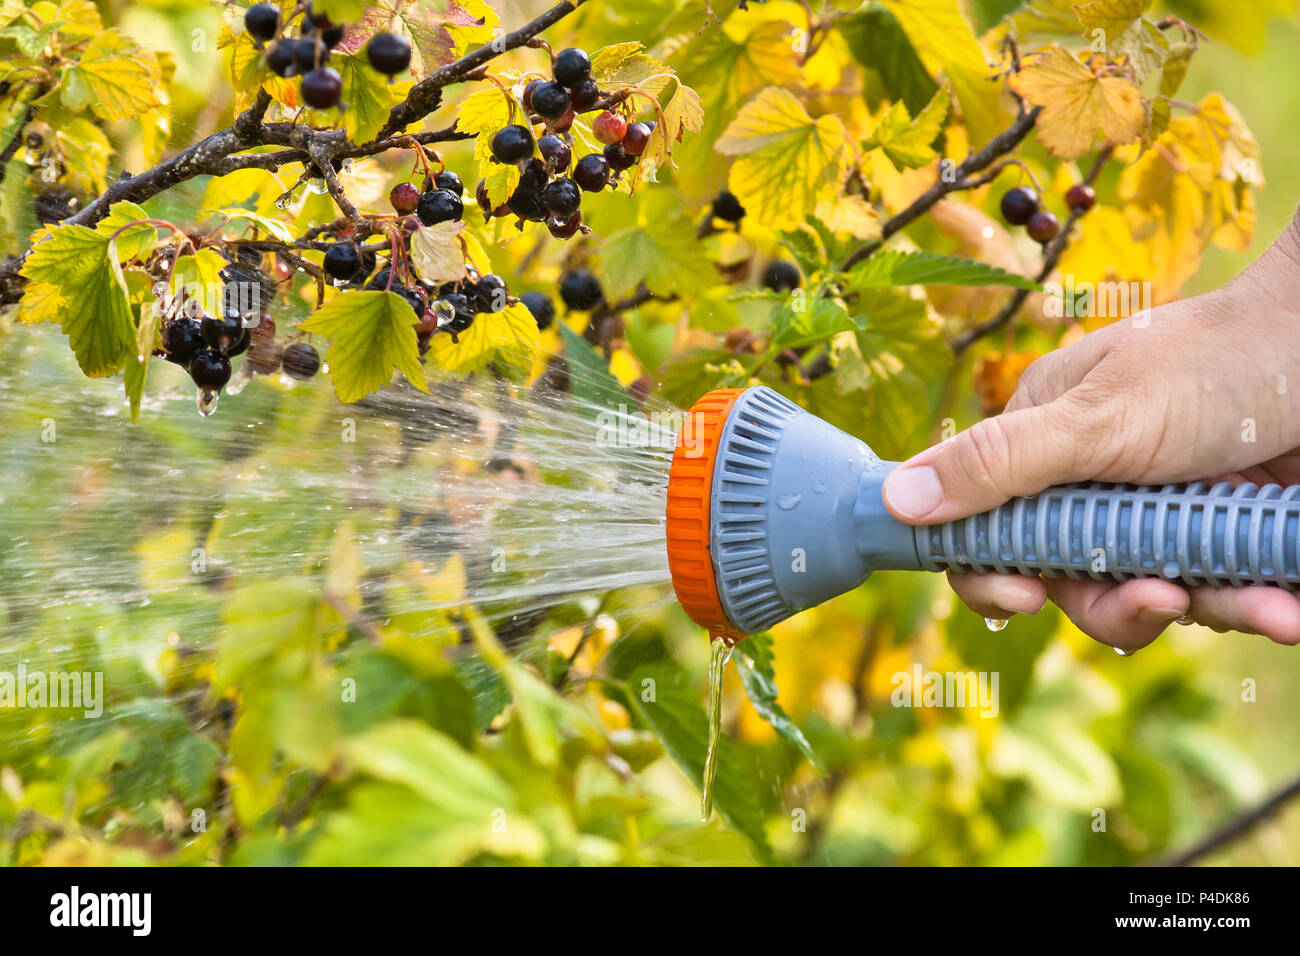 hand watering black currant in the garden - Stock Image